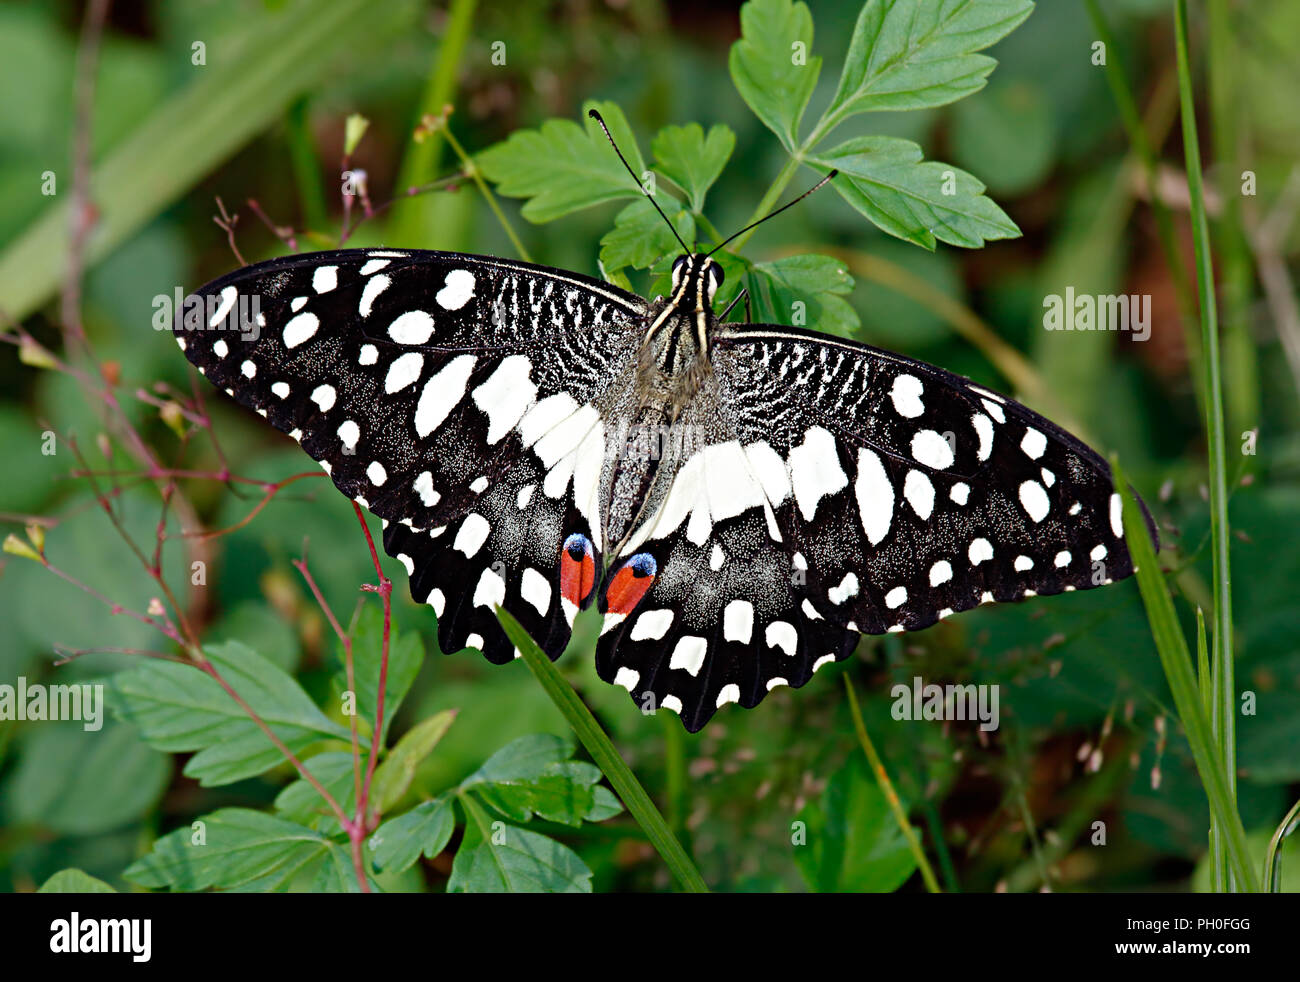 Papilio demoleus Linnaeus, 1758, Papilionidae family, or white lime butterfly in green grass and leaves. - Stock Image